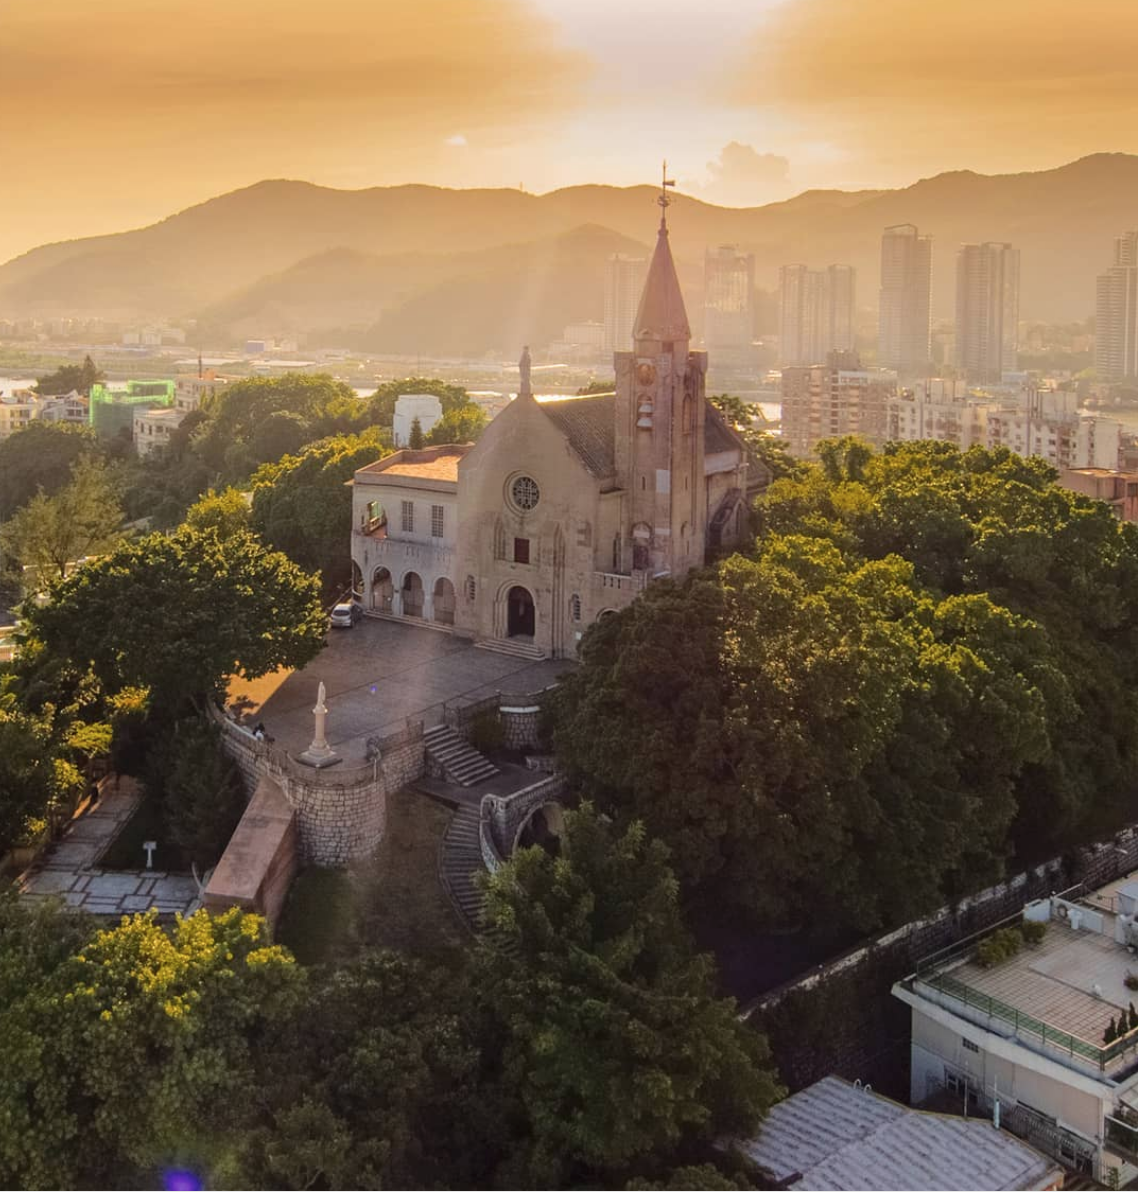 Sunsets Article at Penha Hill by @macaouk